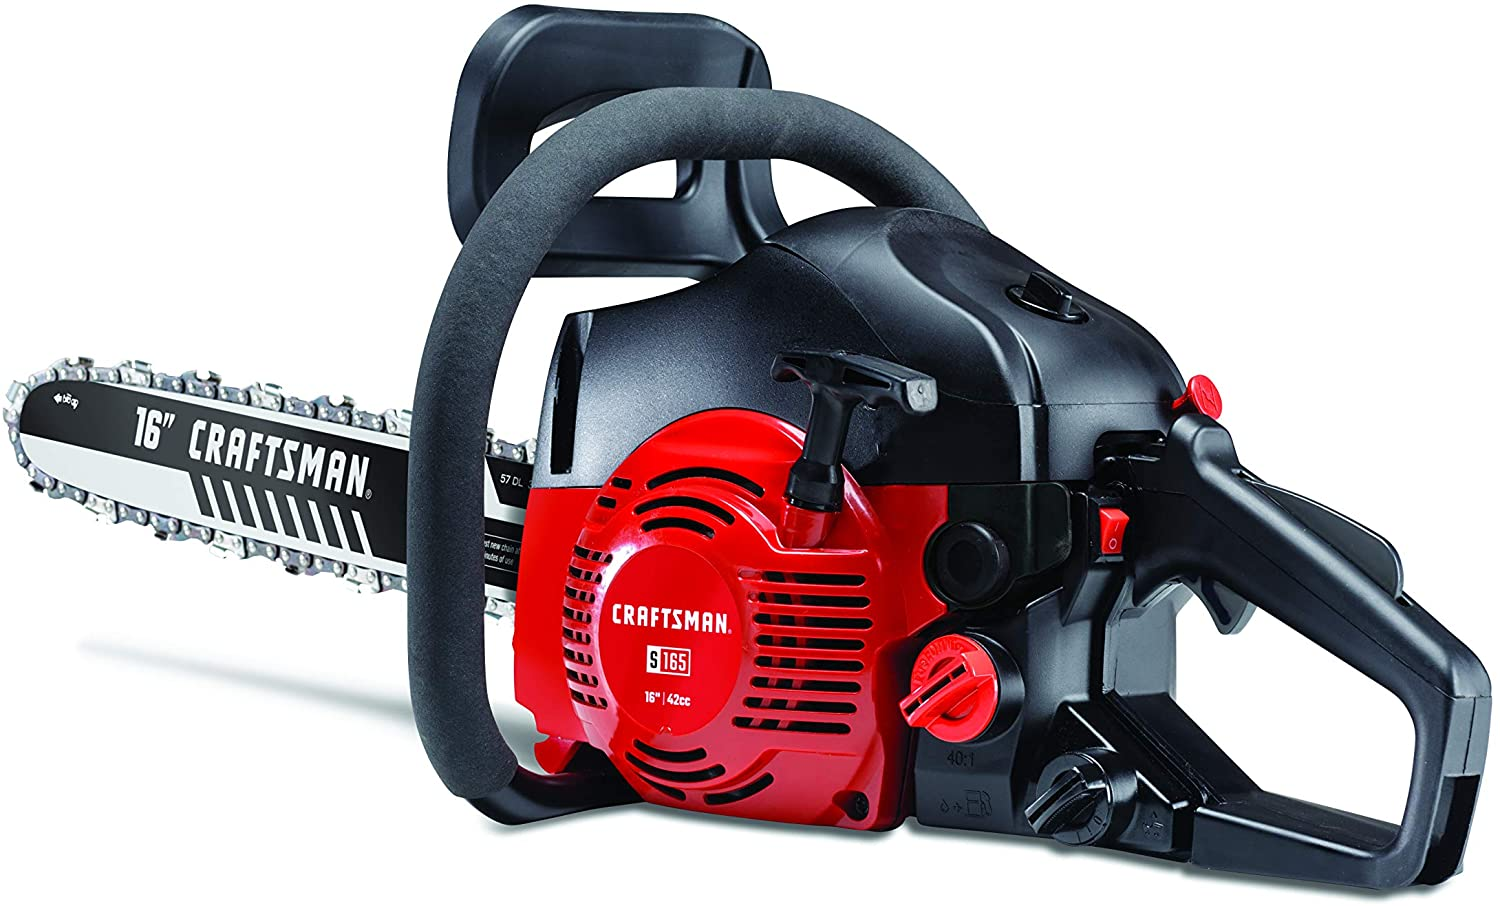 Craftsman Full Crank 2-Cycle Gas Chainsaw